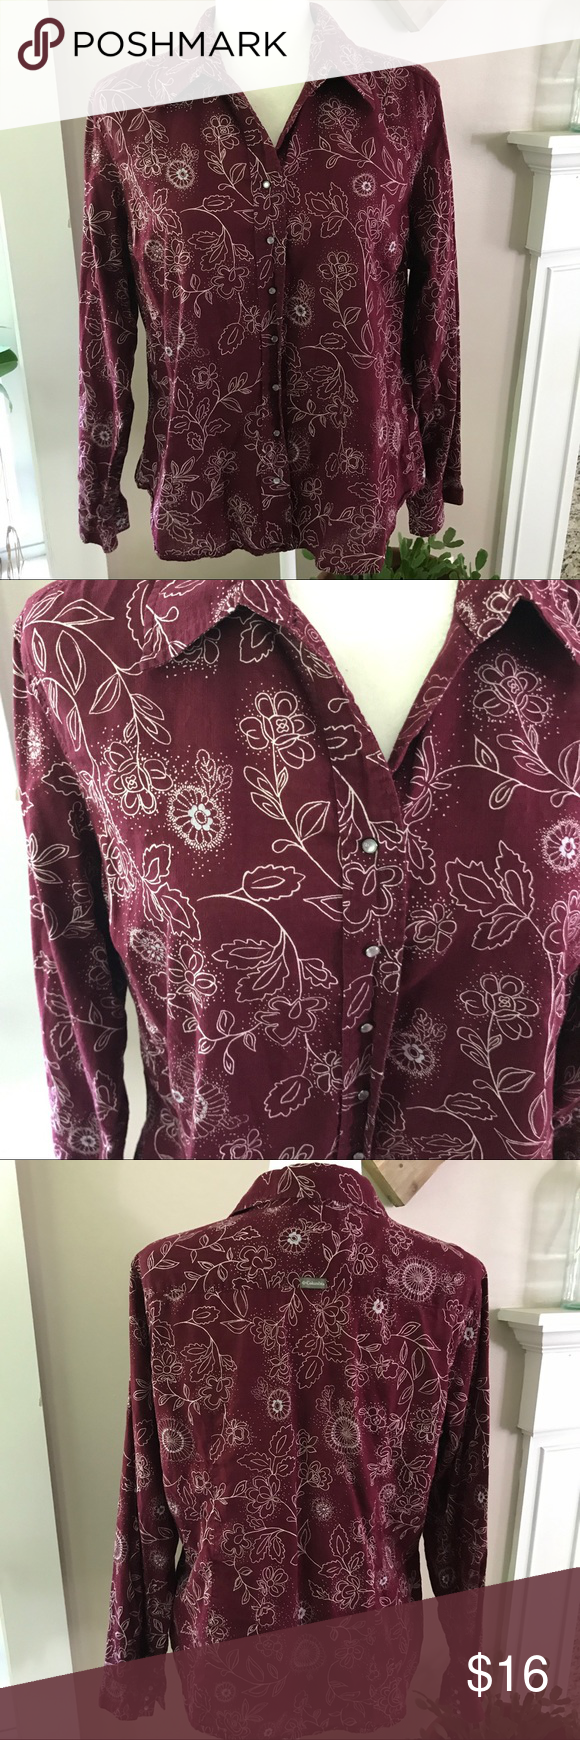 """Columbia Snap Button Up Floral long sleeve shirt 100% cotton Floral design. Snap Button closure. Snap Button closure on cuffs. Maroon/white color. Size XL pit to pit 22 1/2"""" pit to Hem 13"""". Bin 12 Columbia Tops Button Down Shirts"""